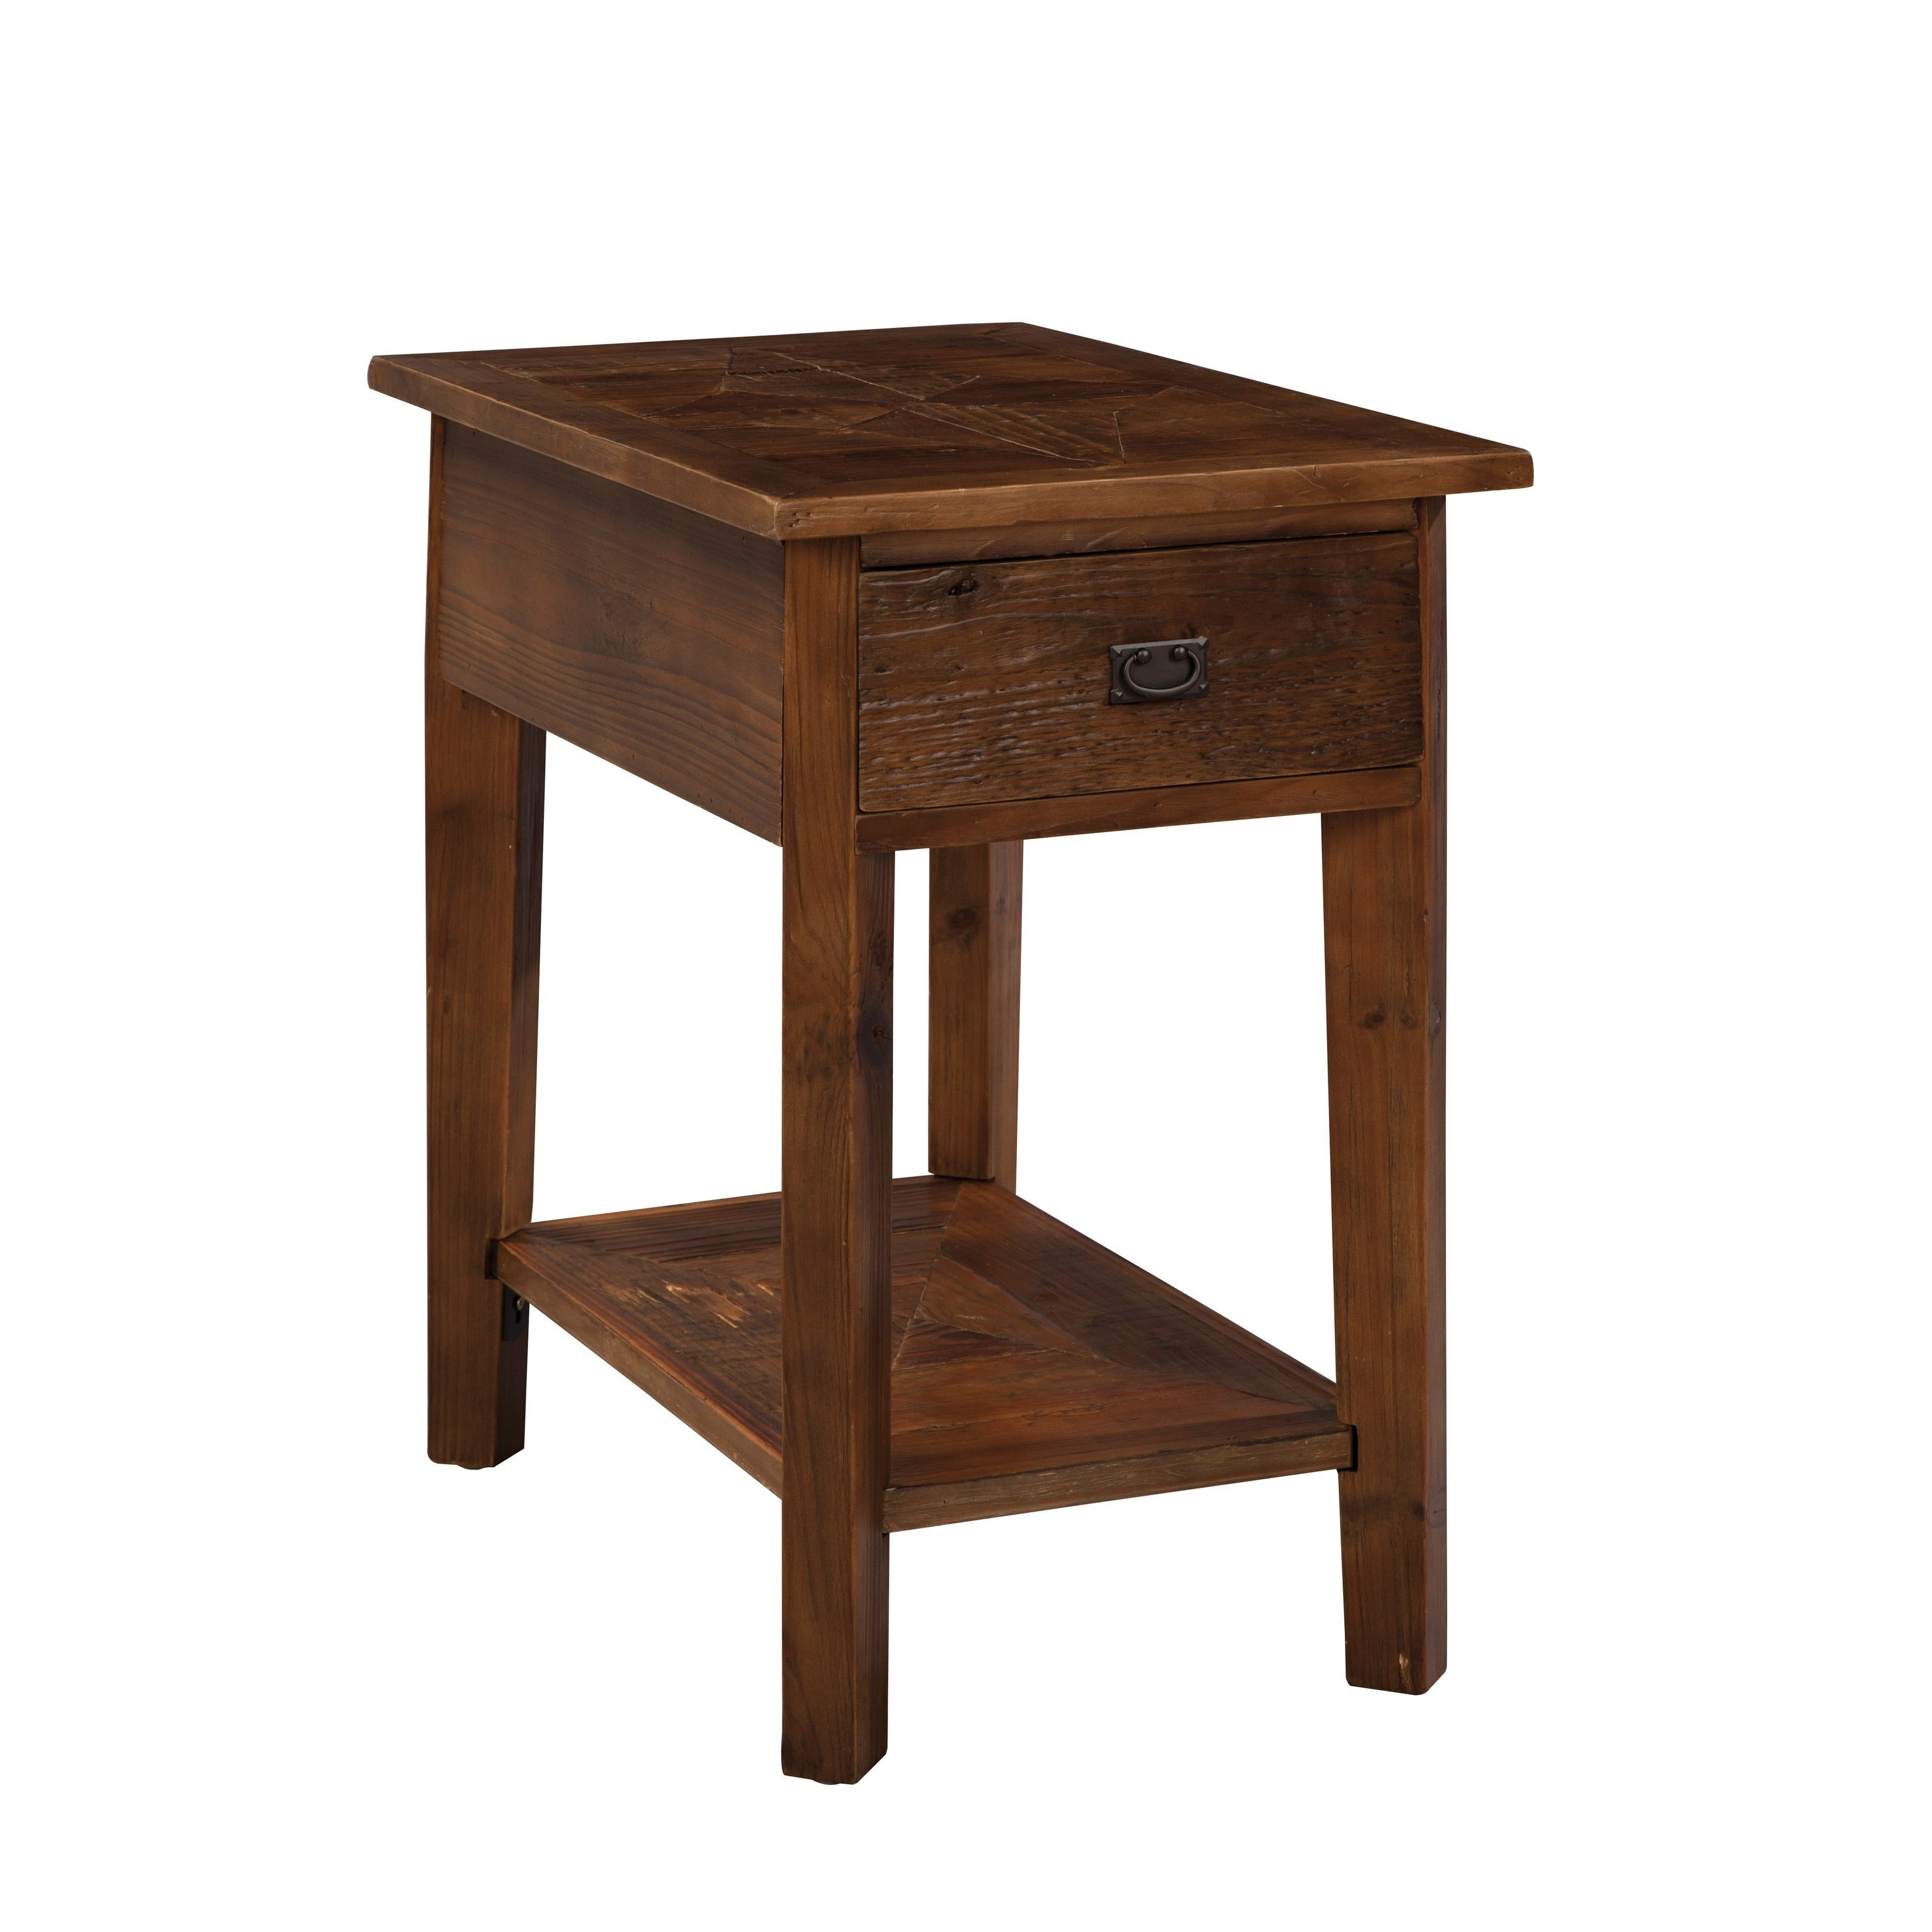 Shop Pine Canopy Redwood Reclaimed Wood Side Table On Sale Free - Redwood side table